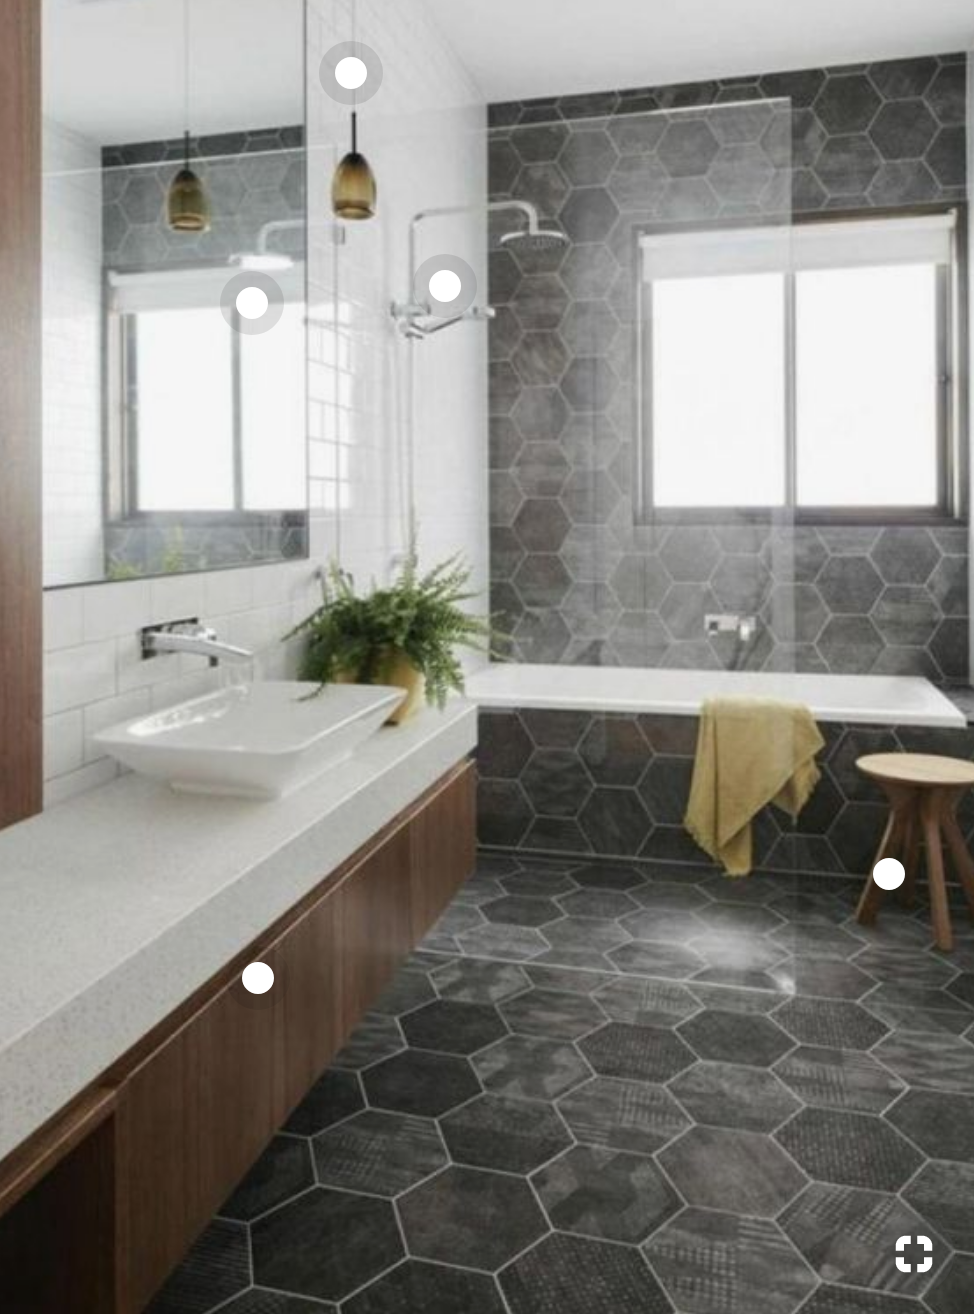 I Like How The Floor Tile Goes Up The Tube And Also Up The Wall Looks Very Linear I L Bathroom Flooring Options Bathroom Design Layout Best Bathroom Flooring